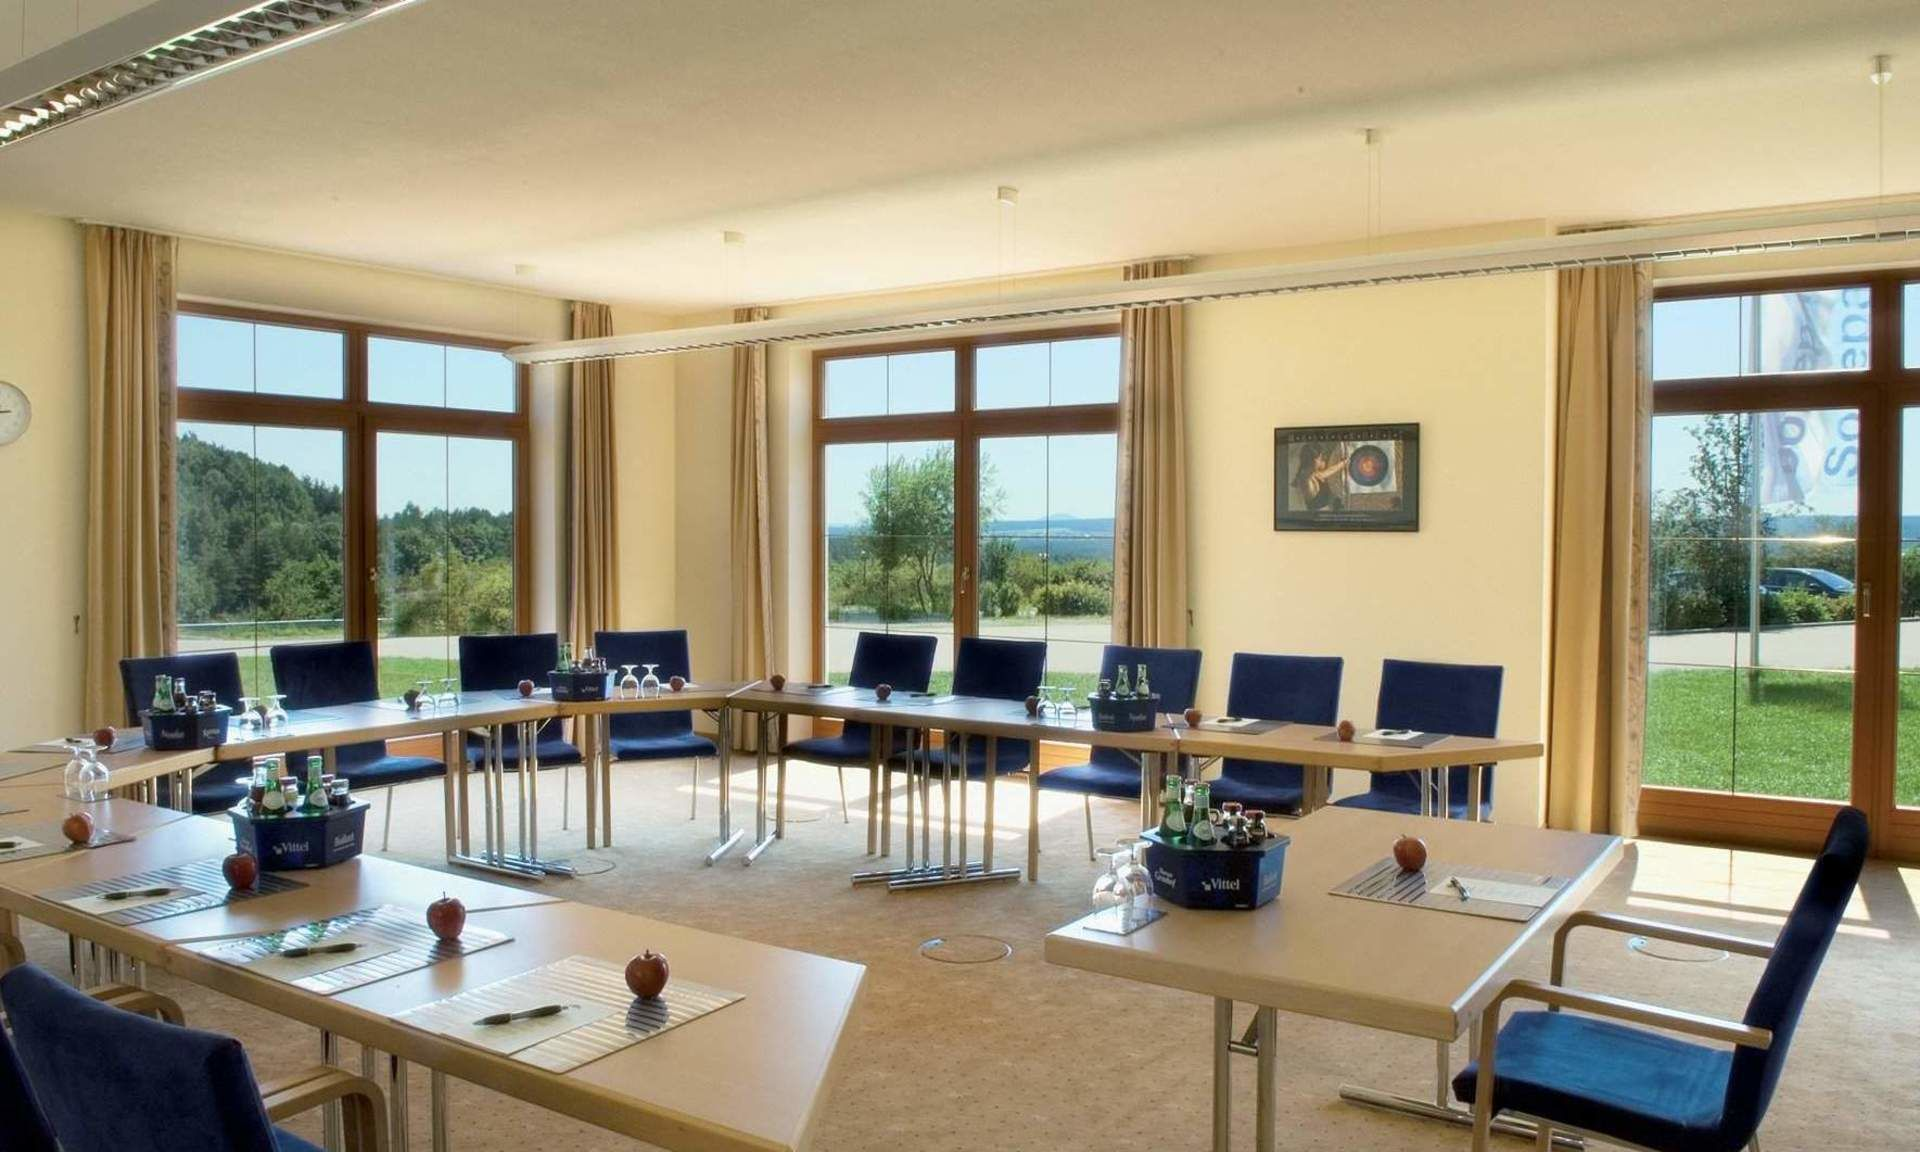 Meeting Landhotel Birkenhof Wellnesshotel Bavaria wellness vacation